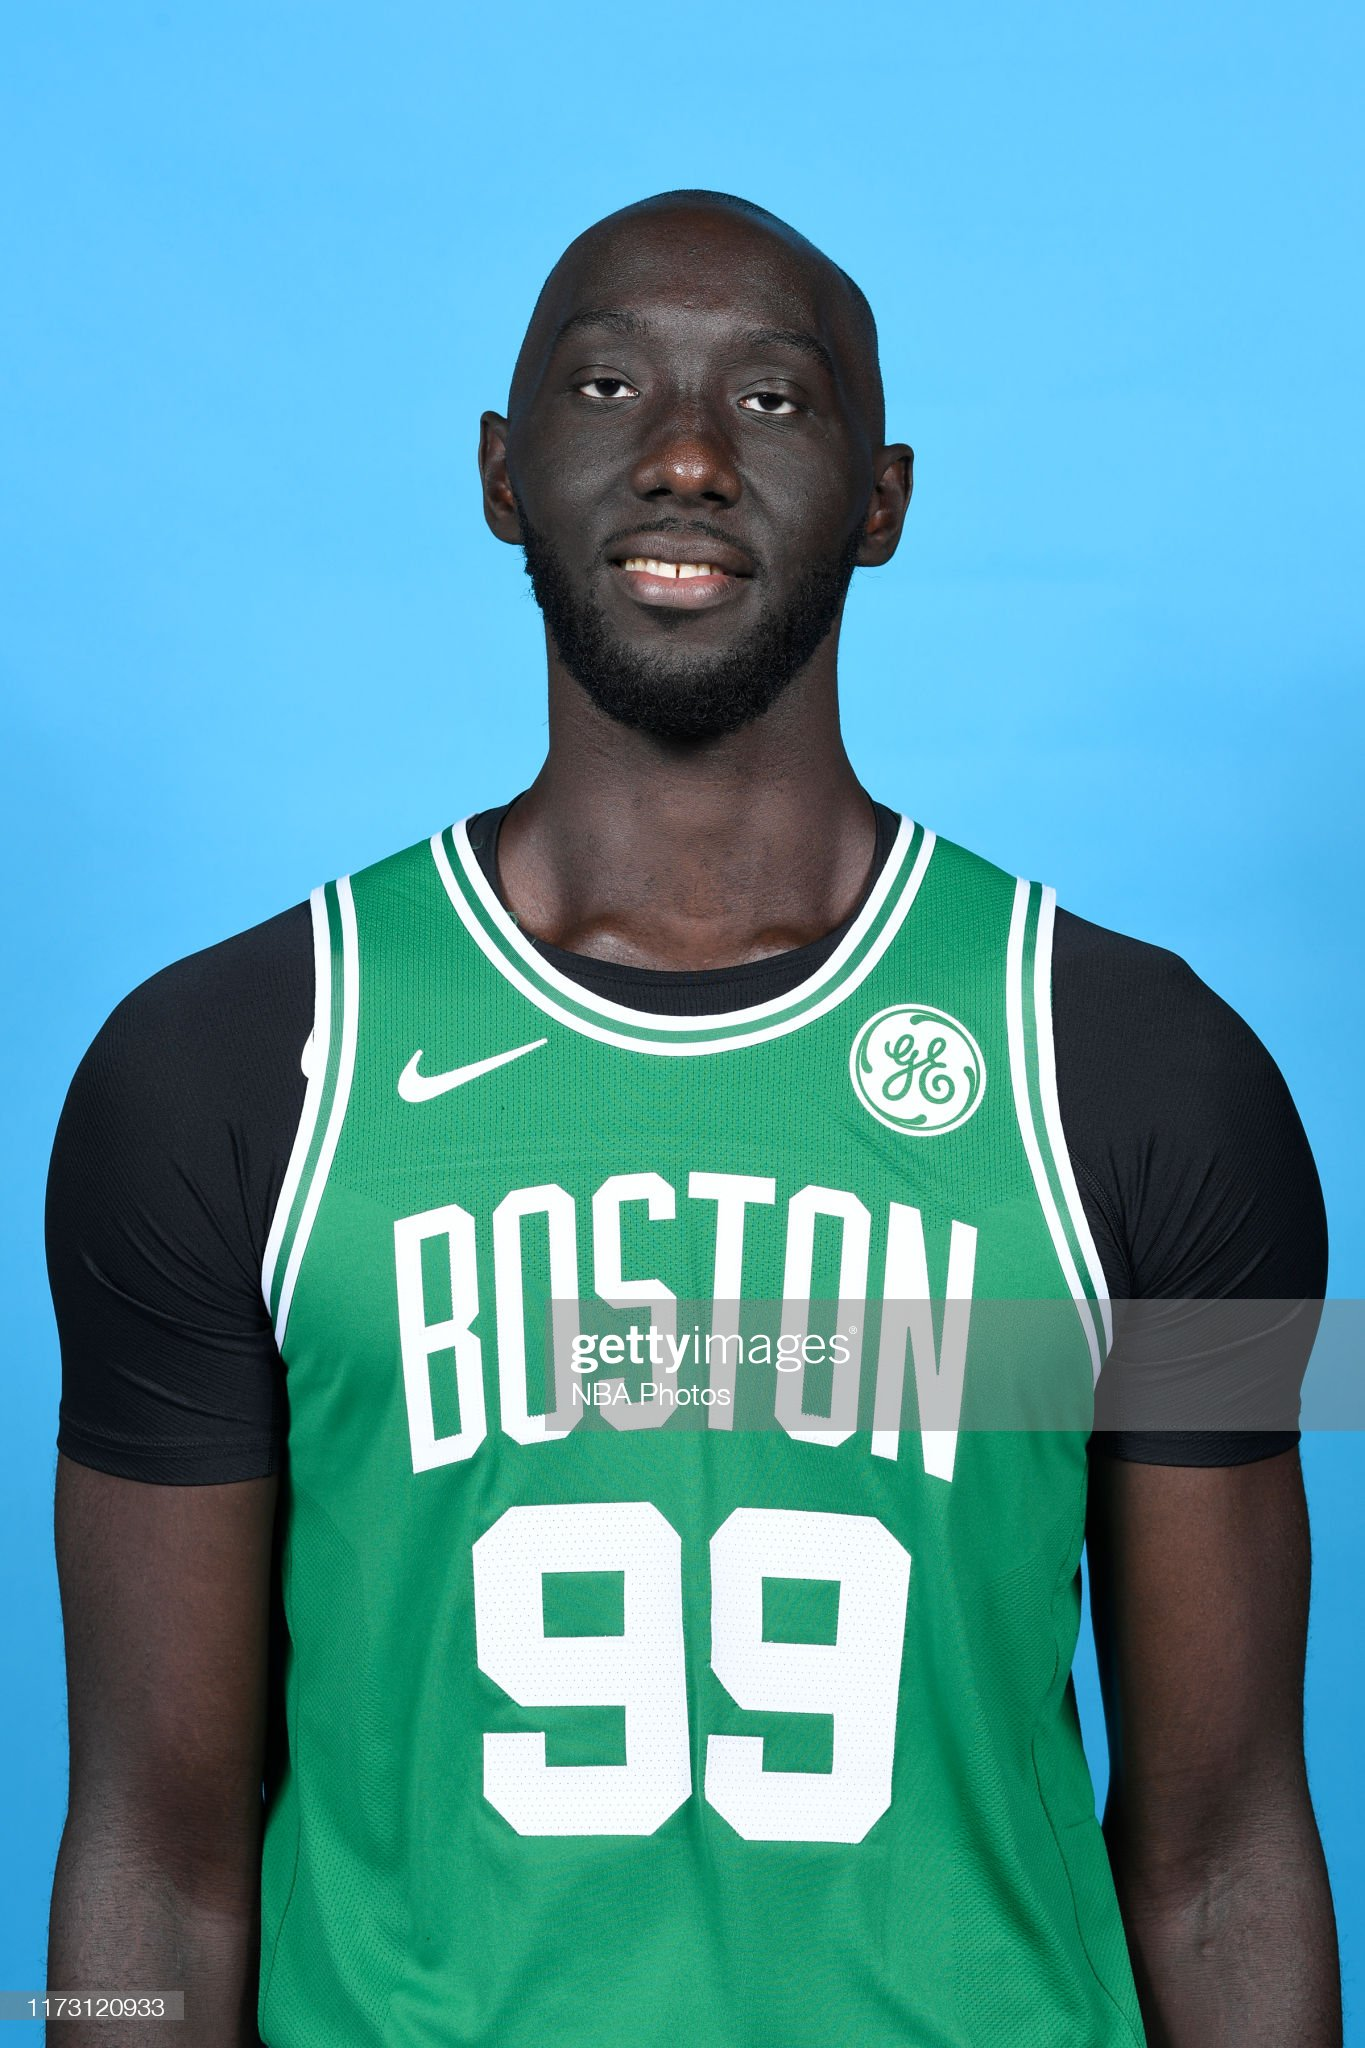 ¿Cuánto mide Tacko Fall? - Altura - Real height Tacko-fall-of-the-boston-celtics-poses-for-a-head-shot-during-media-picture-id1173120933?s=2048x2048